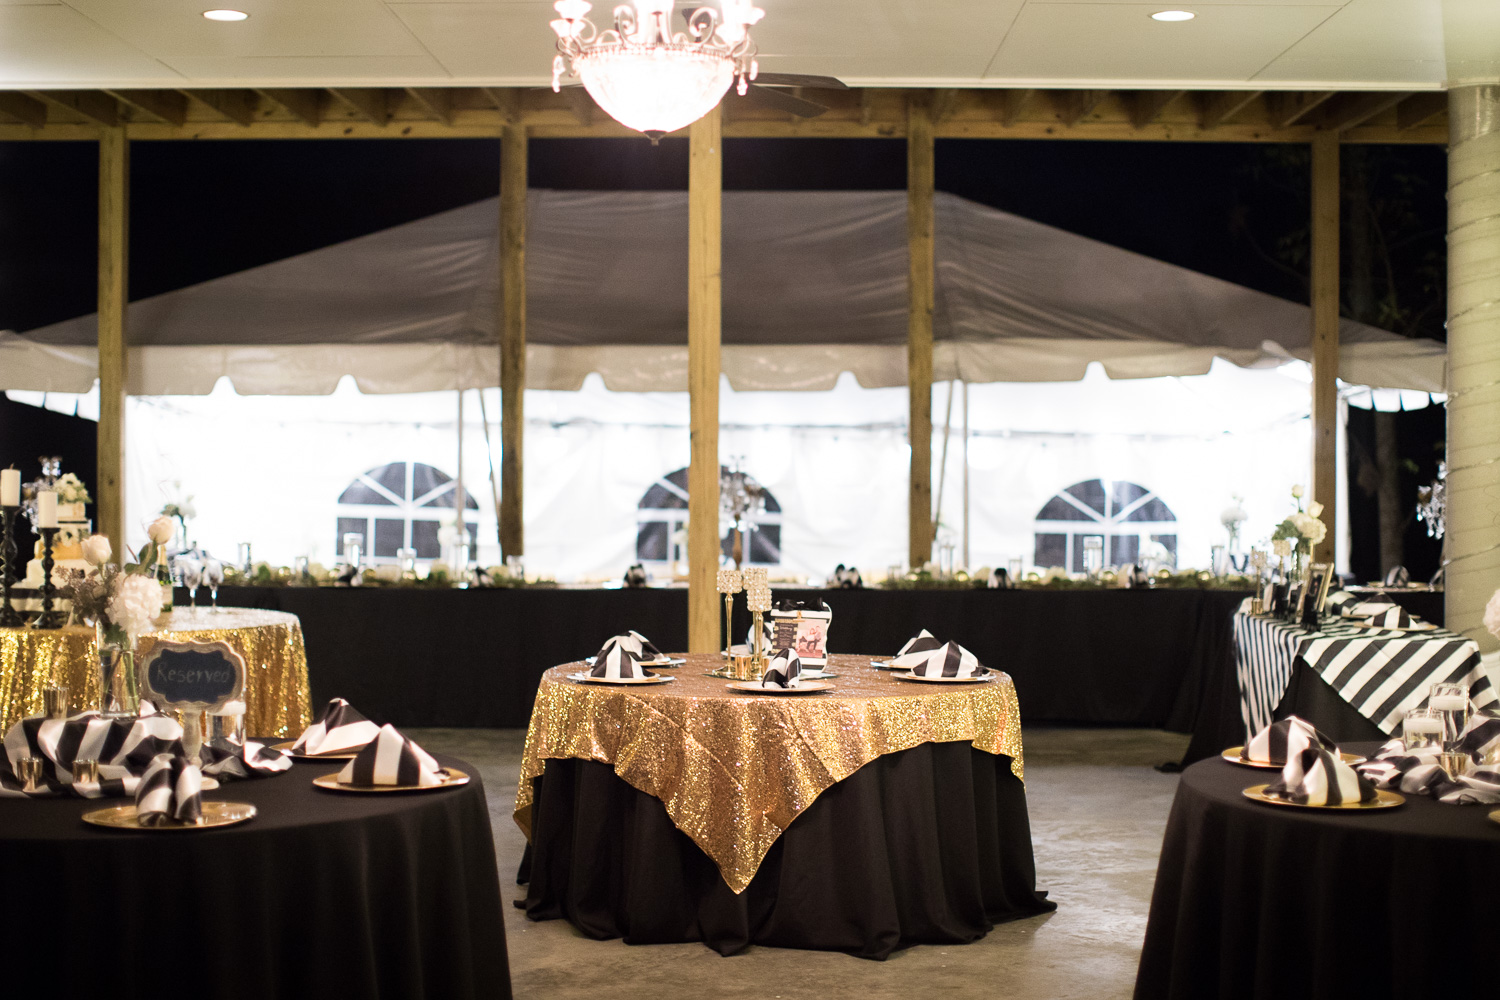 The bold beauty of Juliana's black, white and gold color scheme really sparkled after dark!